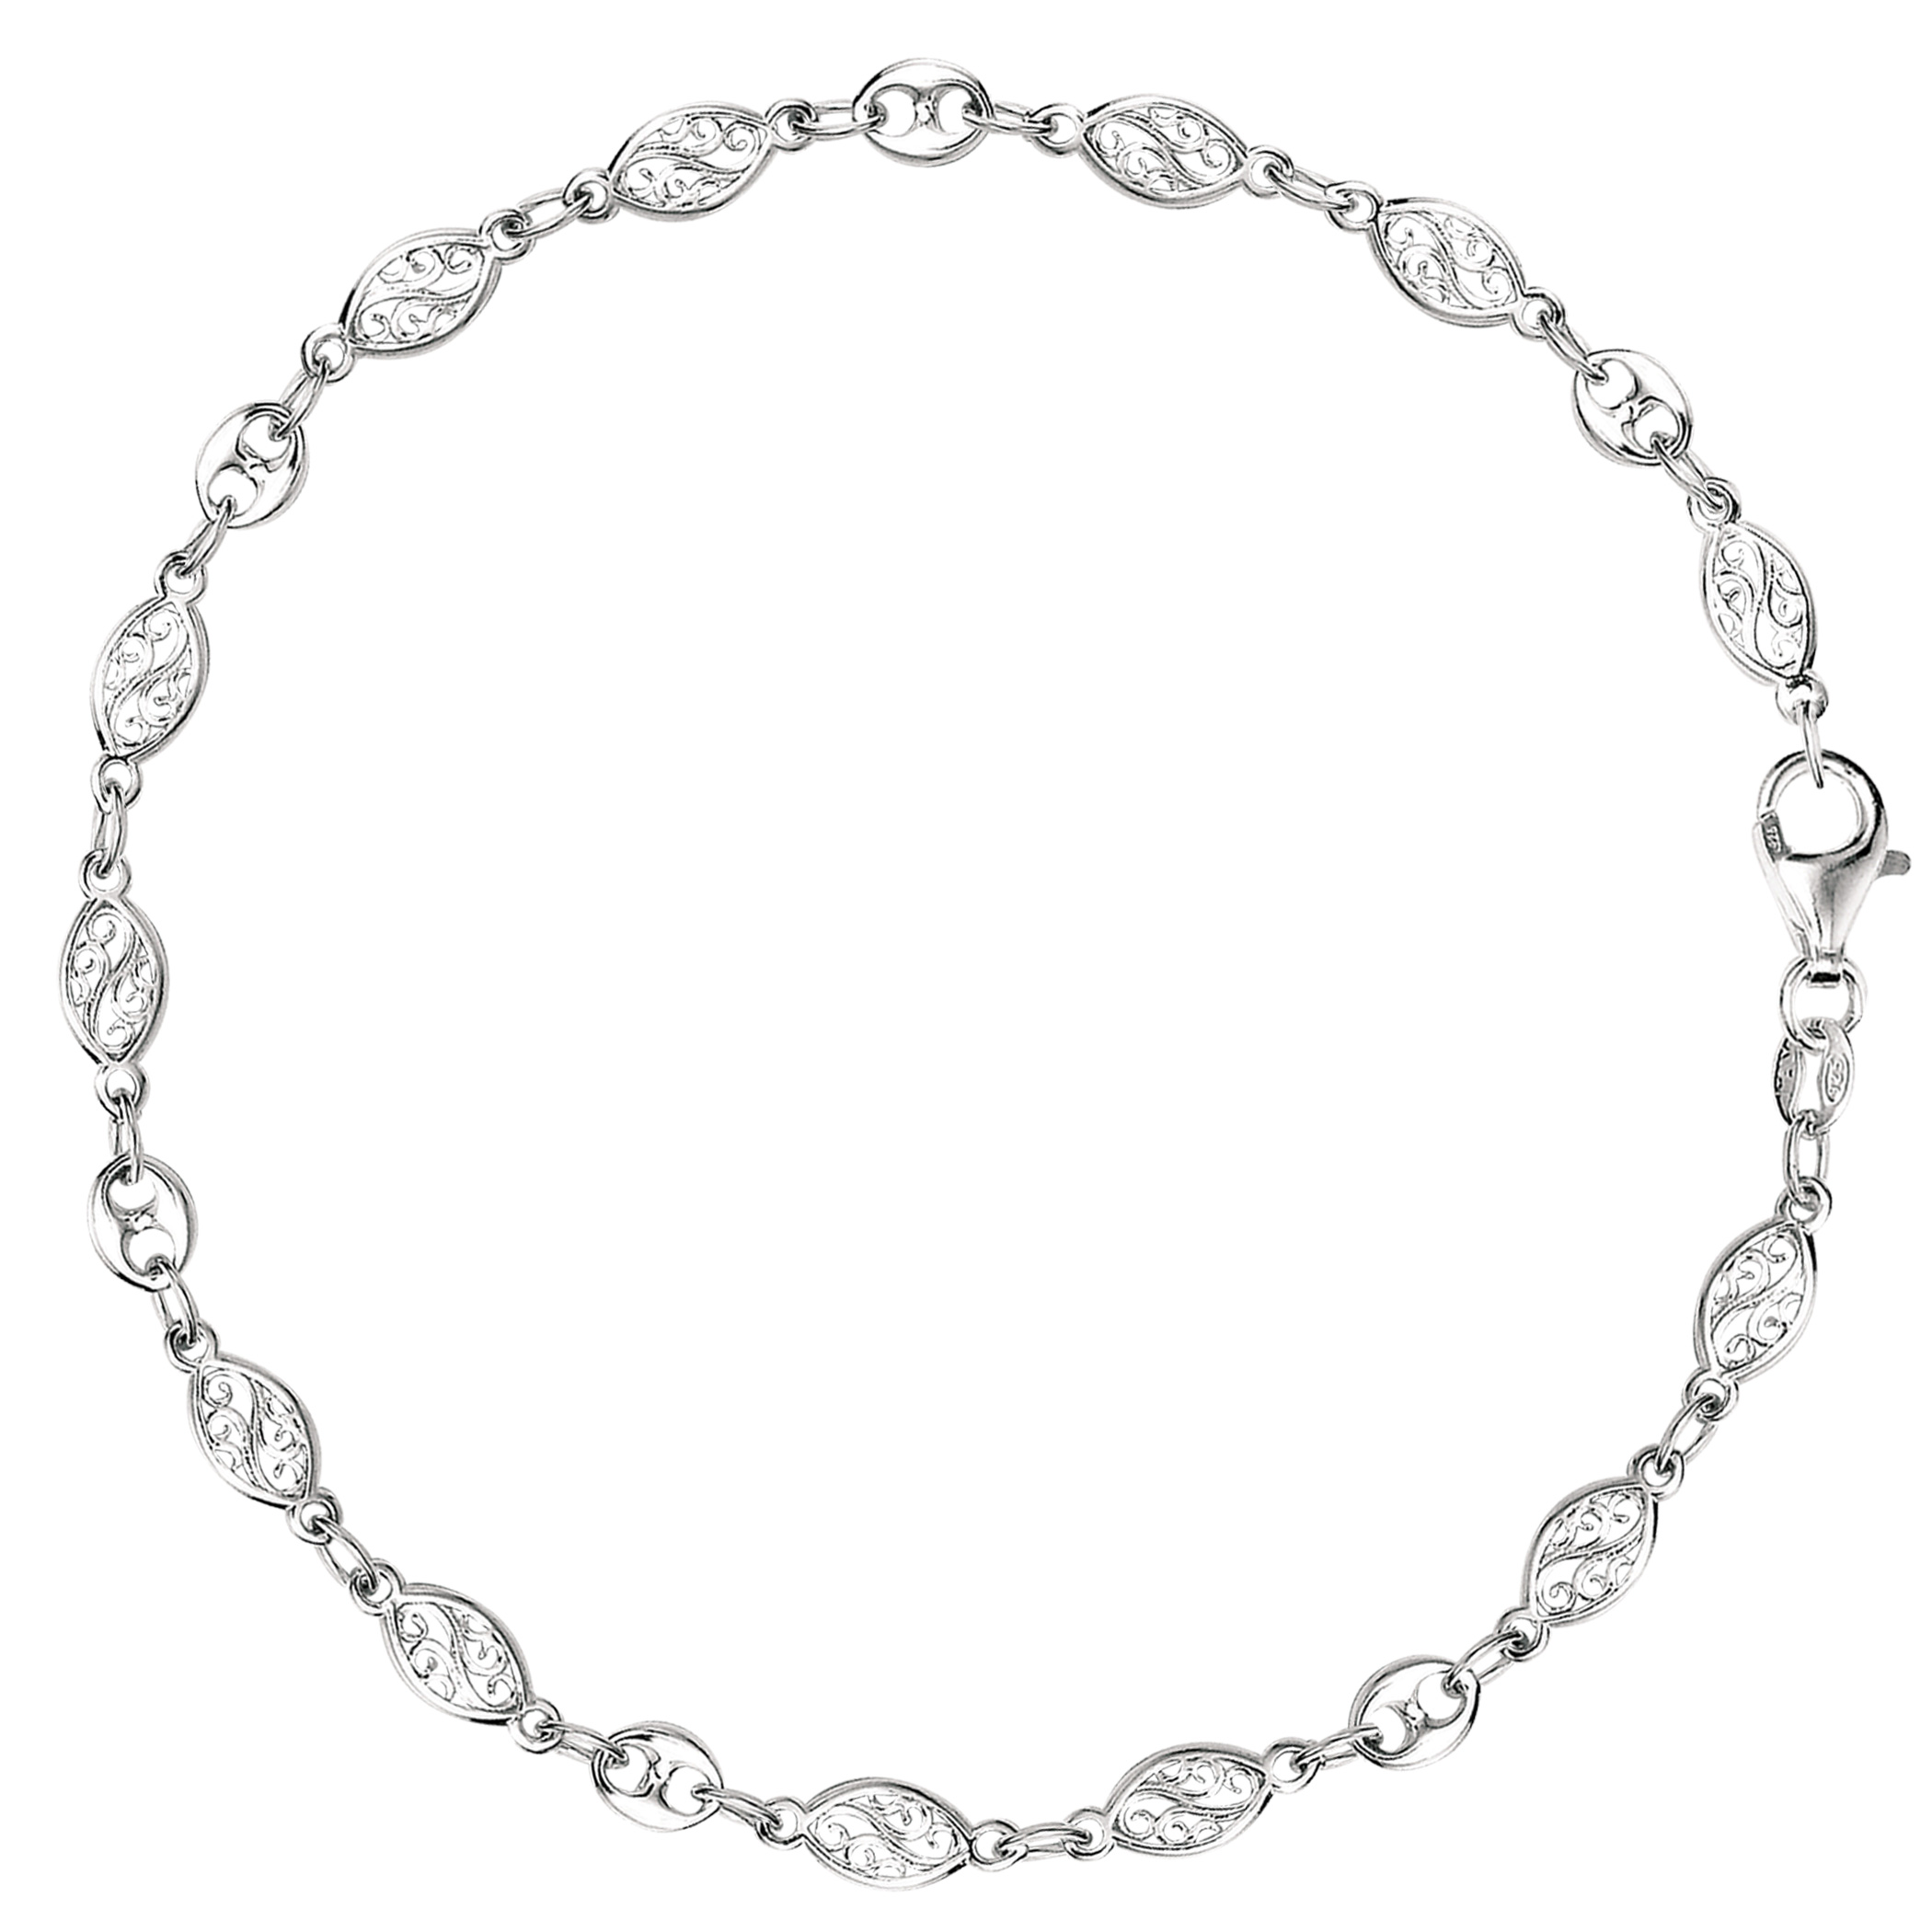 Mixed Filigree And Mariner Link Chain Anklet In Sterling Silver, 10″